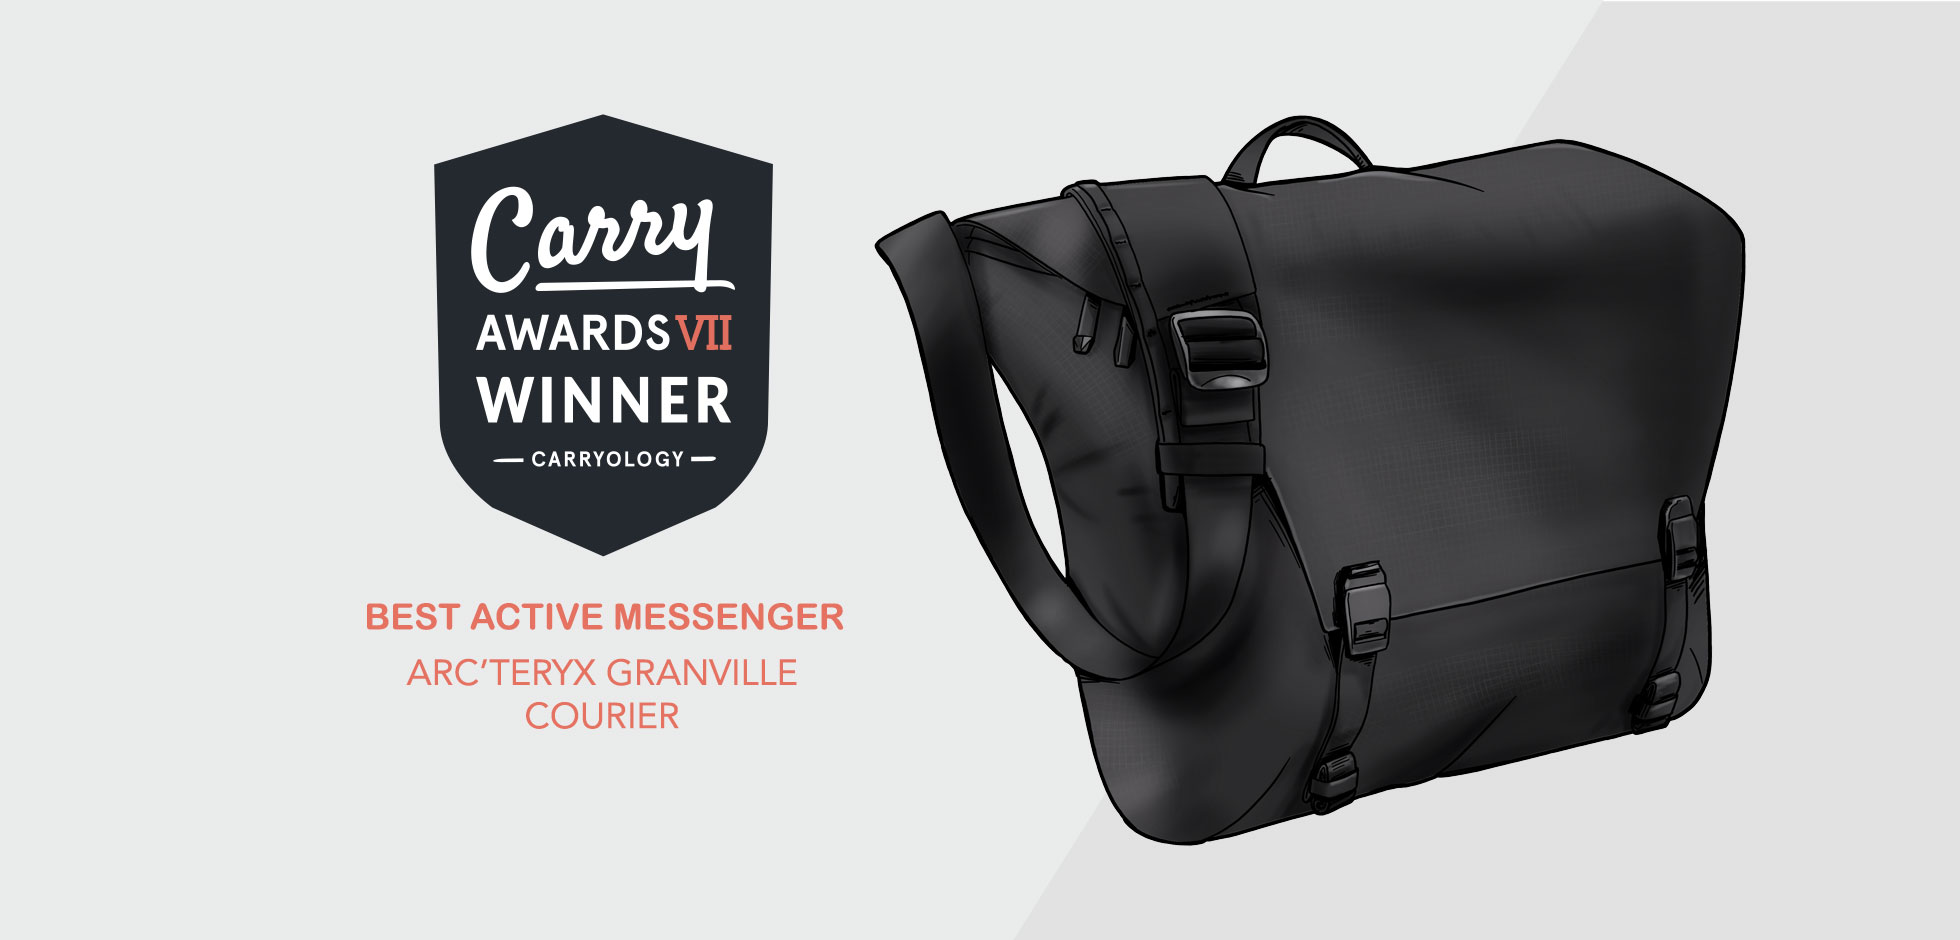 the best active messenger of 2019 is… arc'teryx granville courier